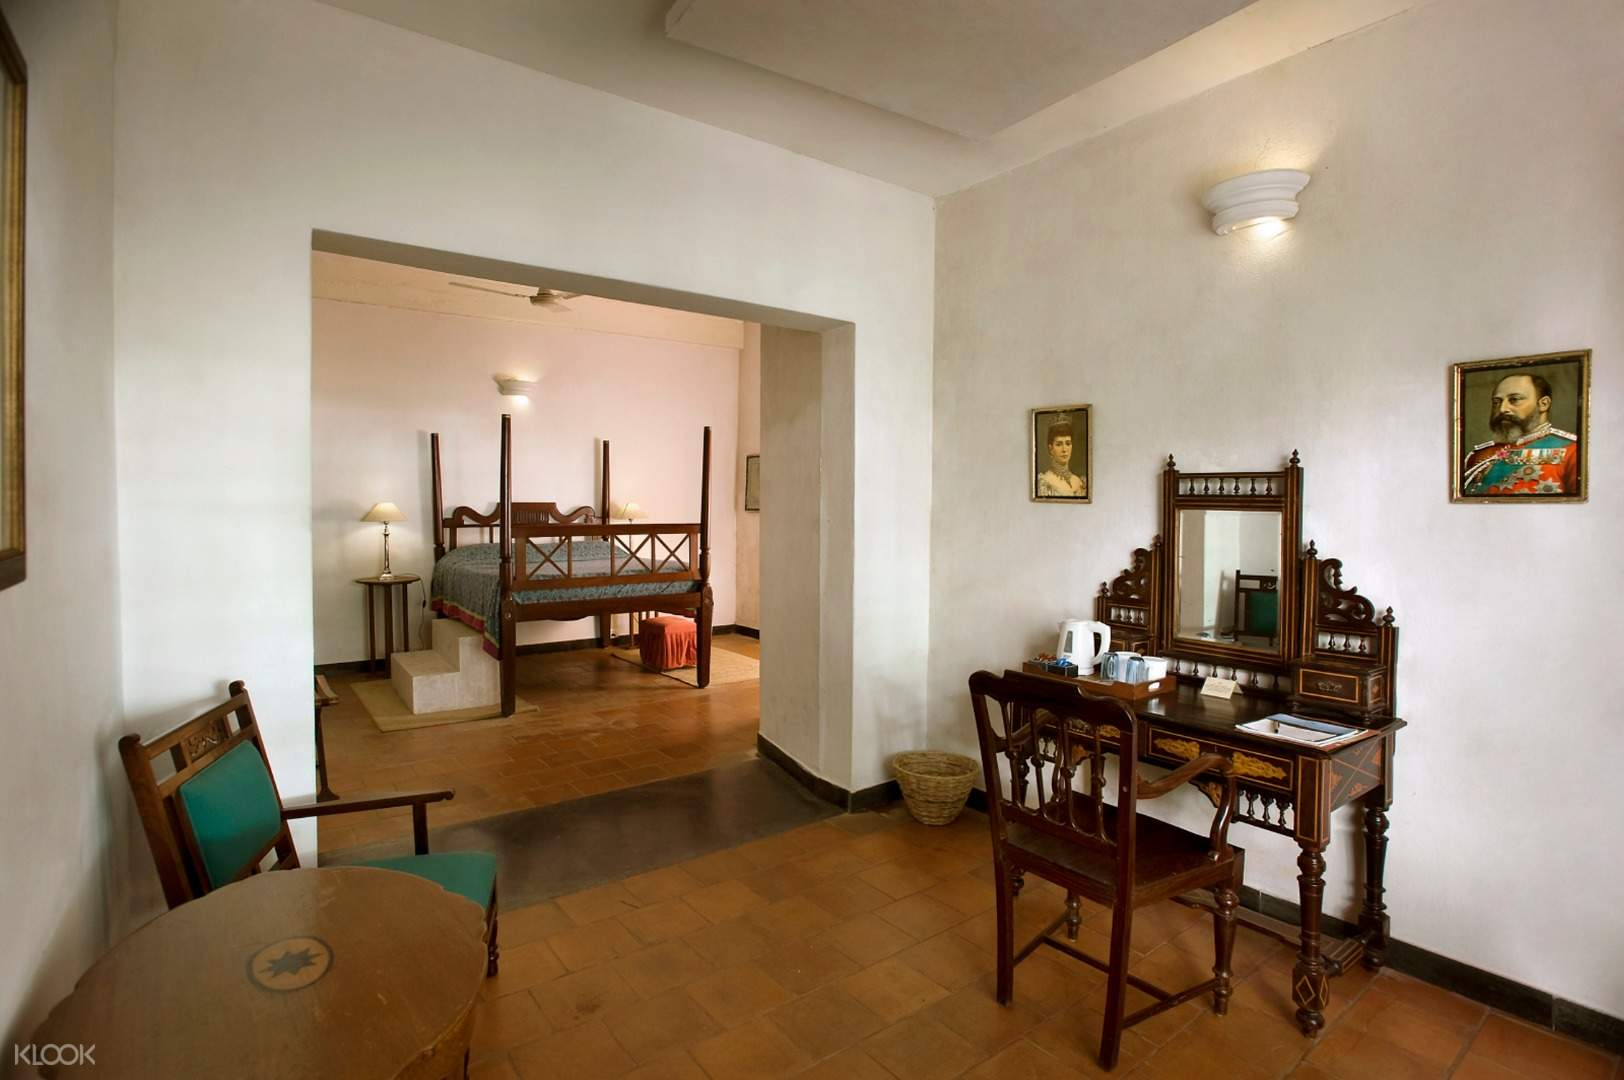 Heritage Staycation At Neemrana Tower House Cochin Overnight Stay Klook Us